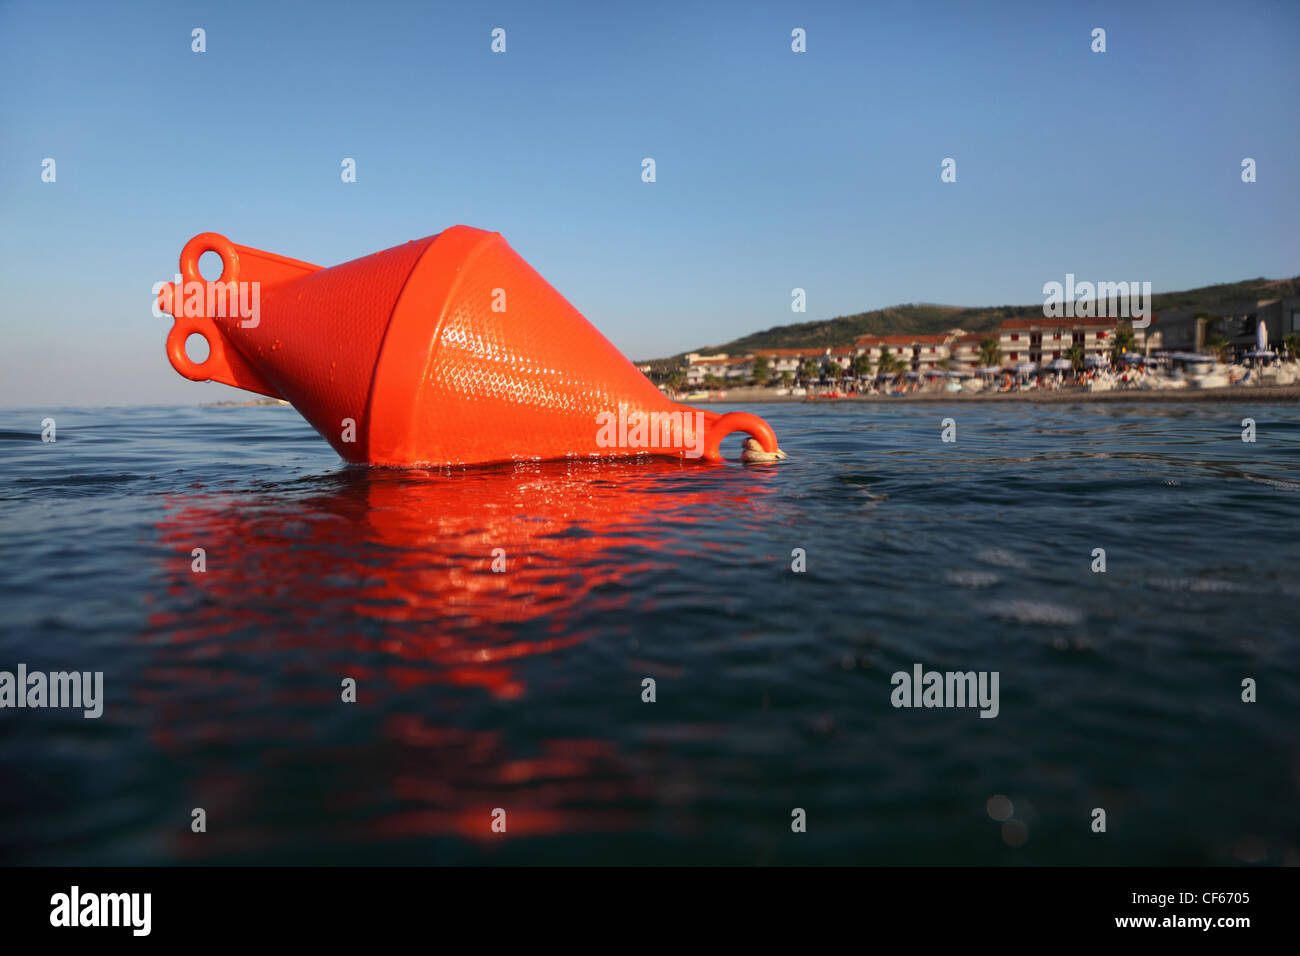 orange anchor buoy floats on the sea. beach could be seen in the distance - Stock Image